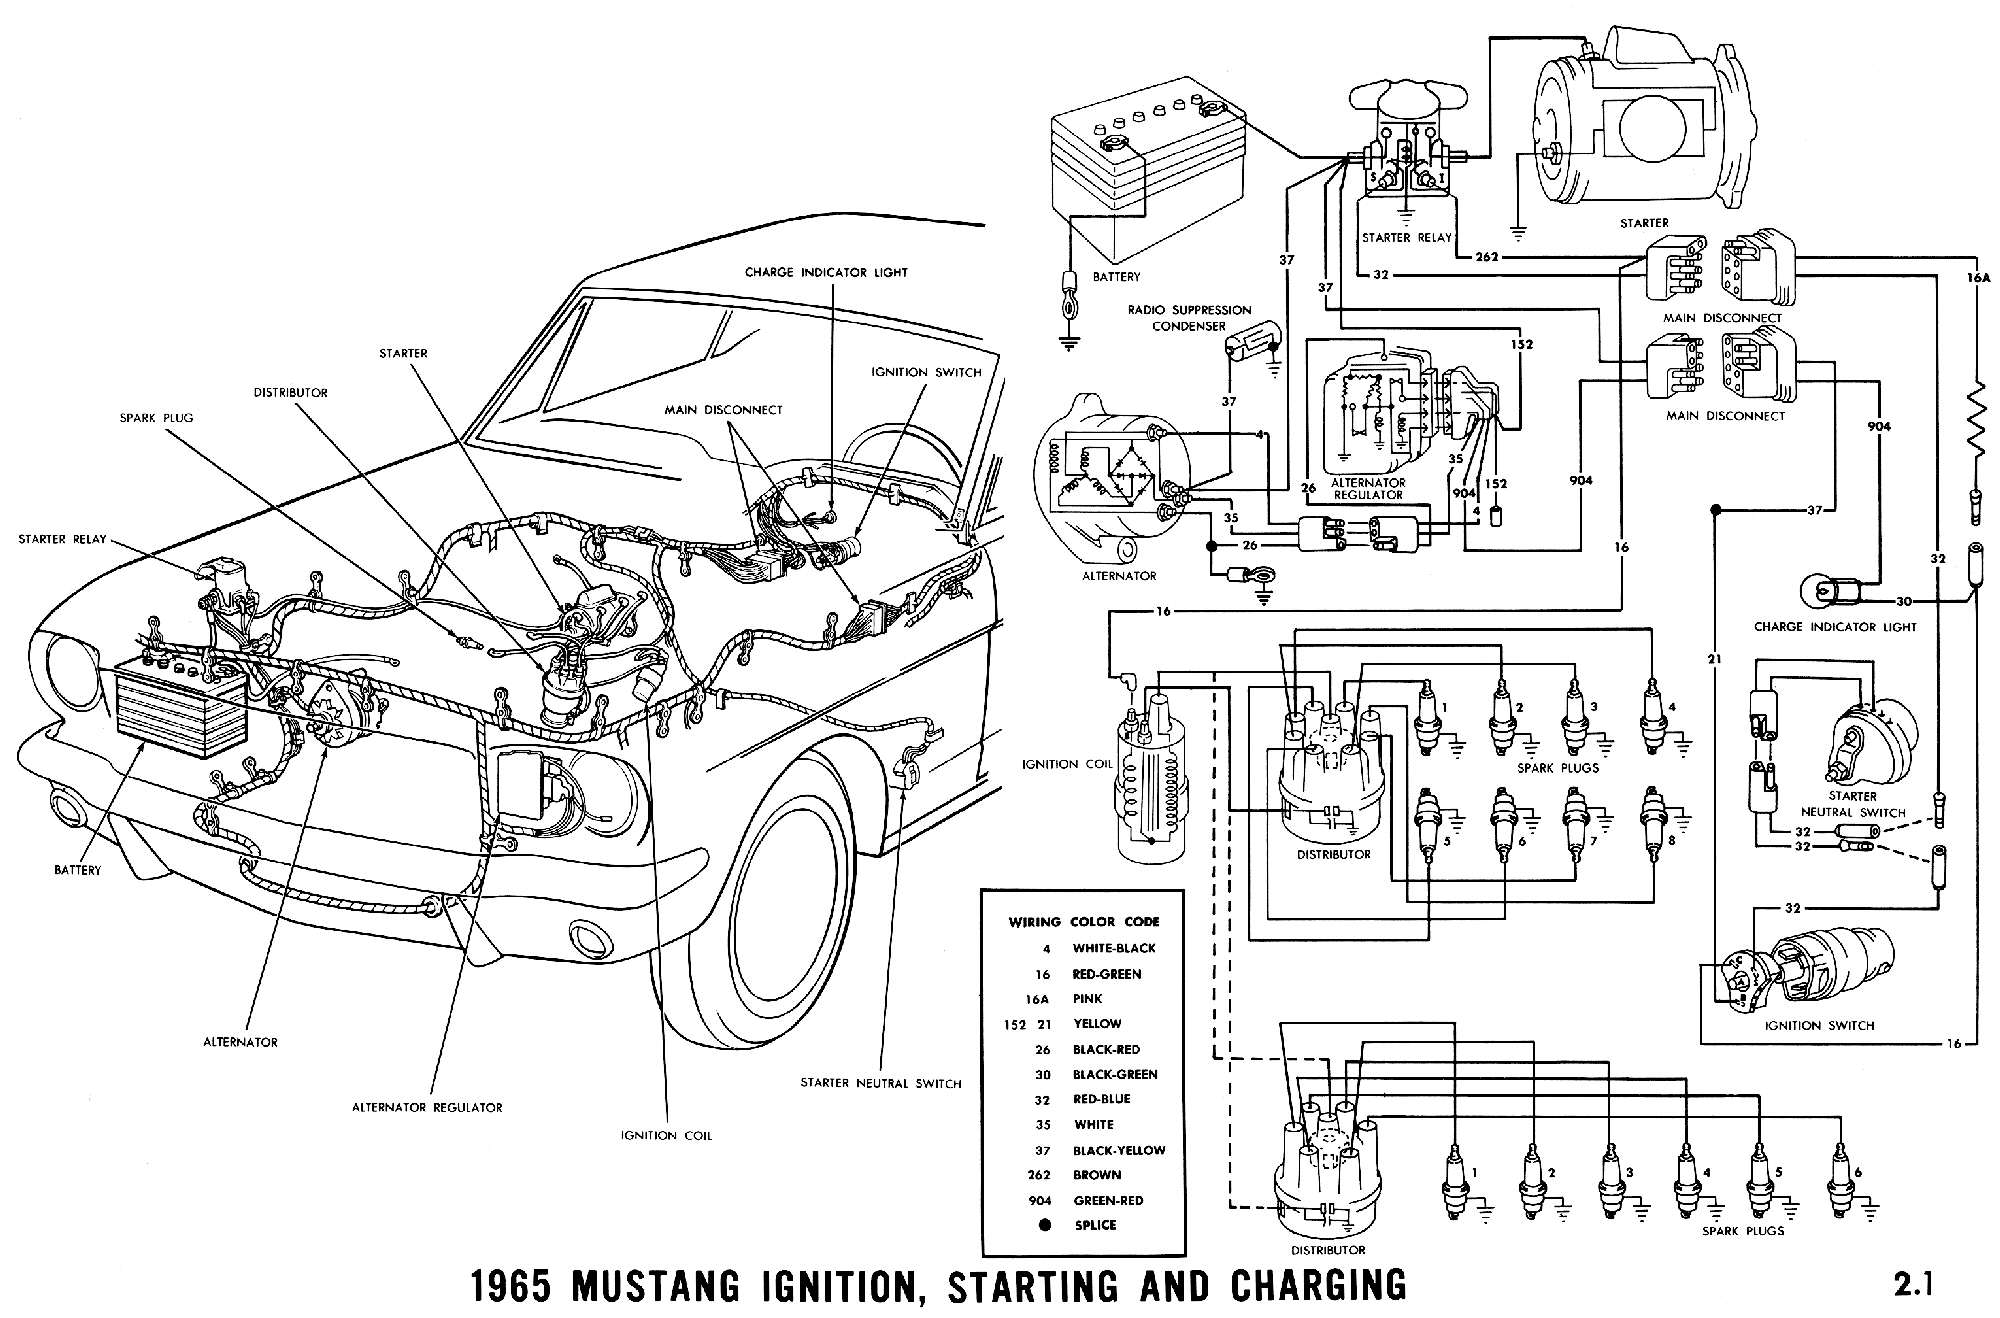 1965 Mustang Wiring Diagrams on 1999 mercury cougar wiper fuse